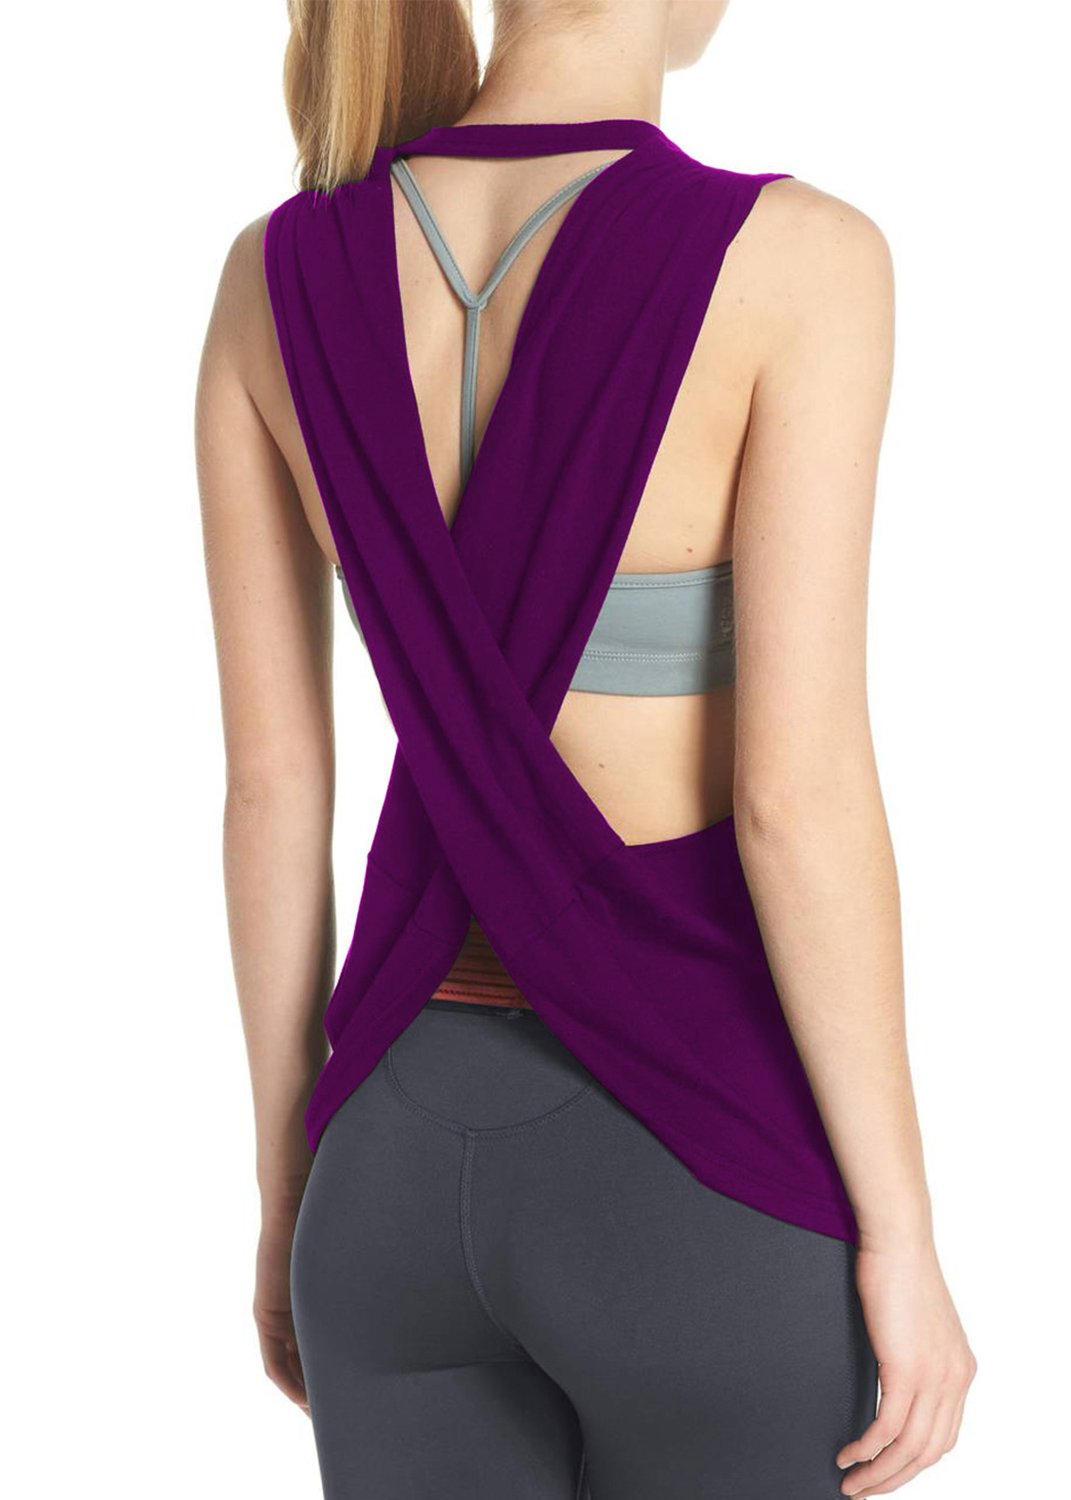 Fihapyli Women's Yoga Top Cross Back Workout Clothes Sleeveless Running Blouse Racerback Tank Tops Loose Fit Sports Active Tanks (Purple, S)